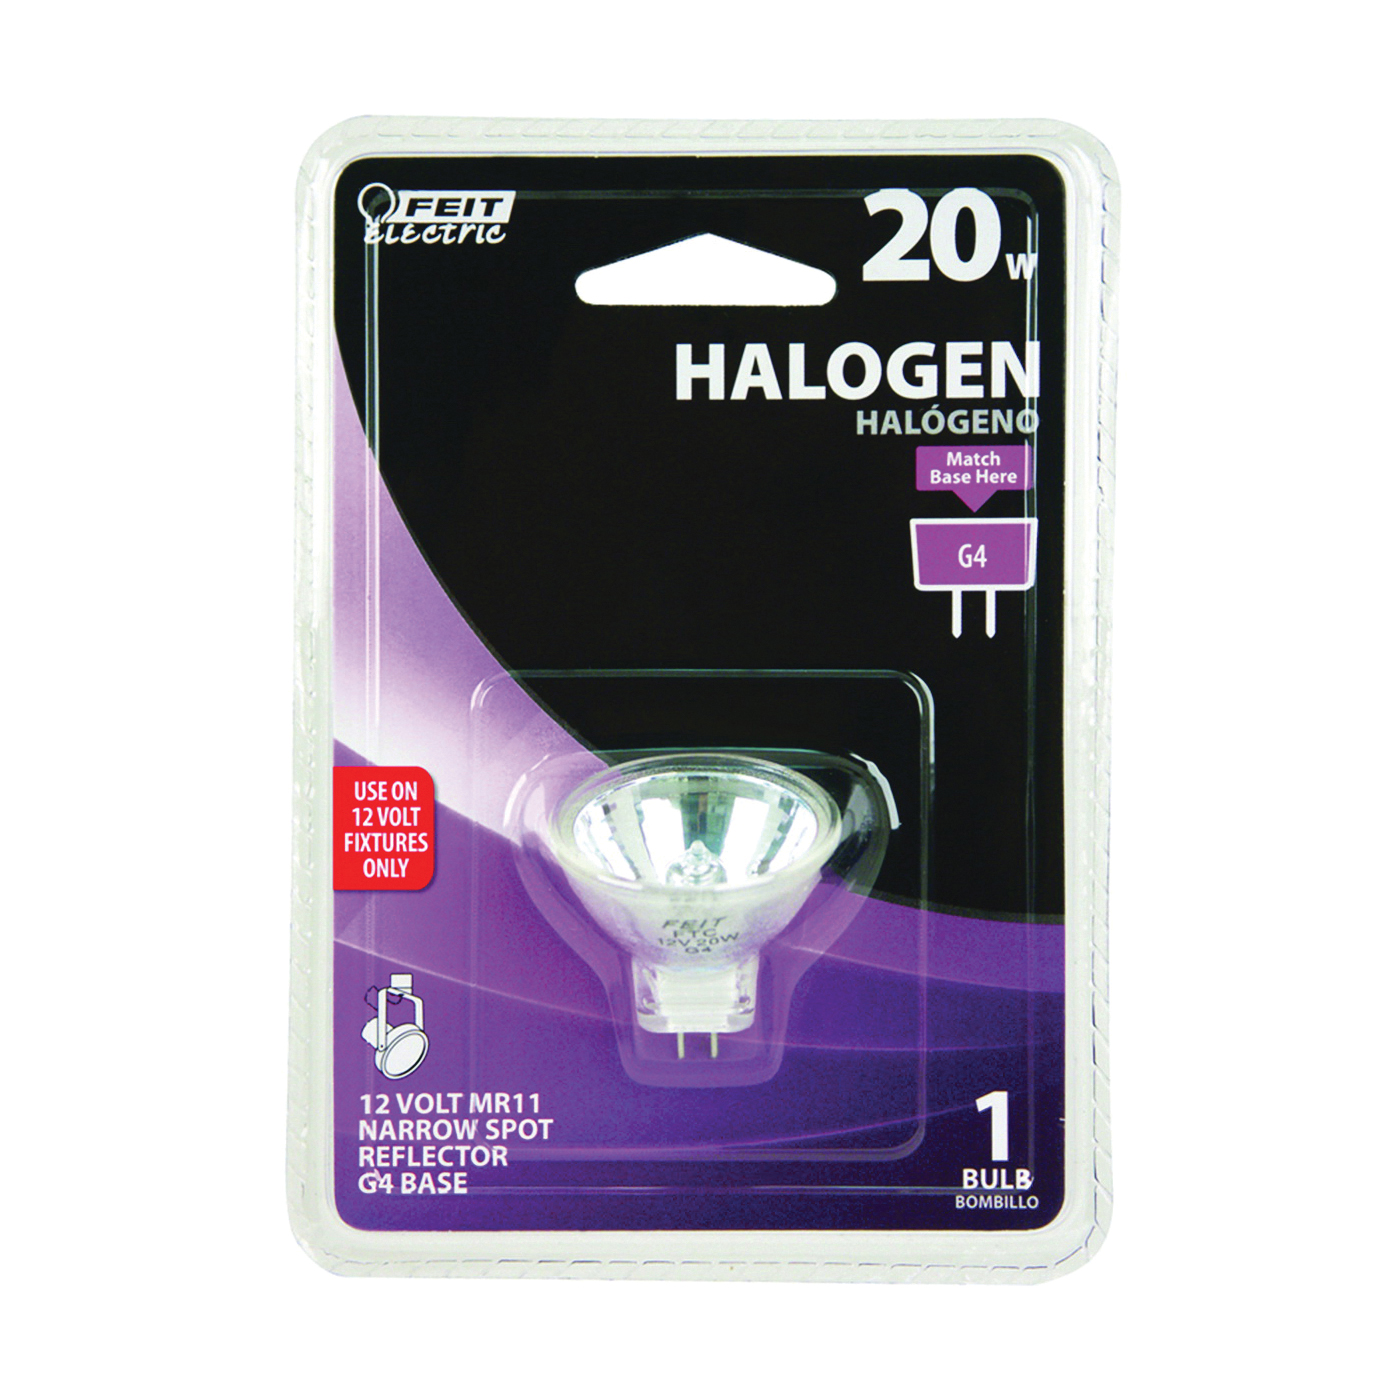 Picture of Feit Electric BPFTC Halogen Lamp, 20 W, G4 Lamp Base, MR11 Lamp, 3000 K Color Temp, 3000 hr Average Life